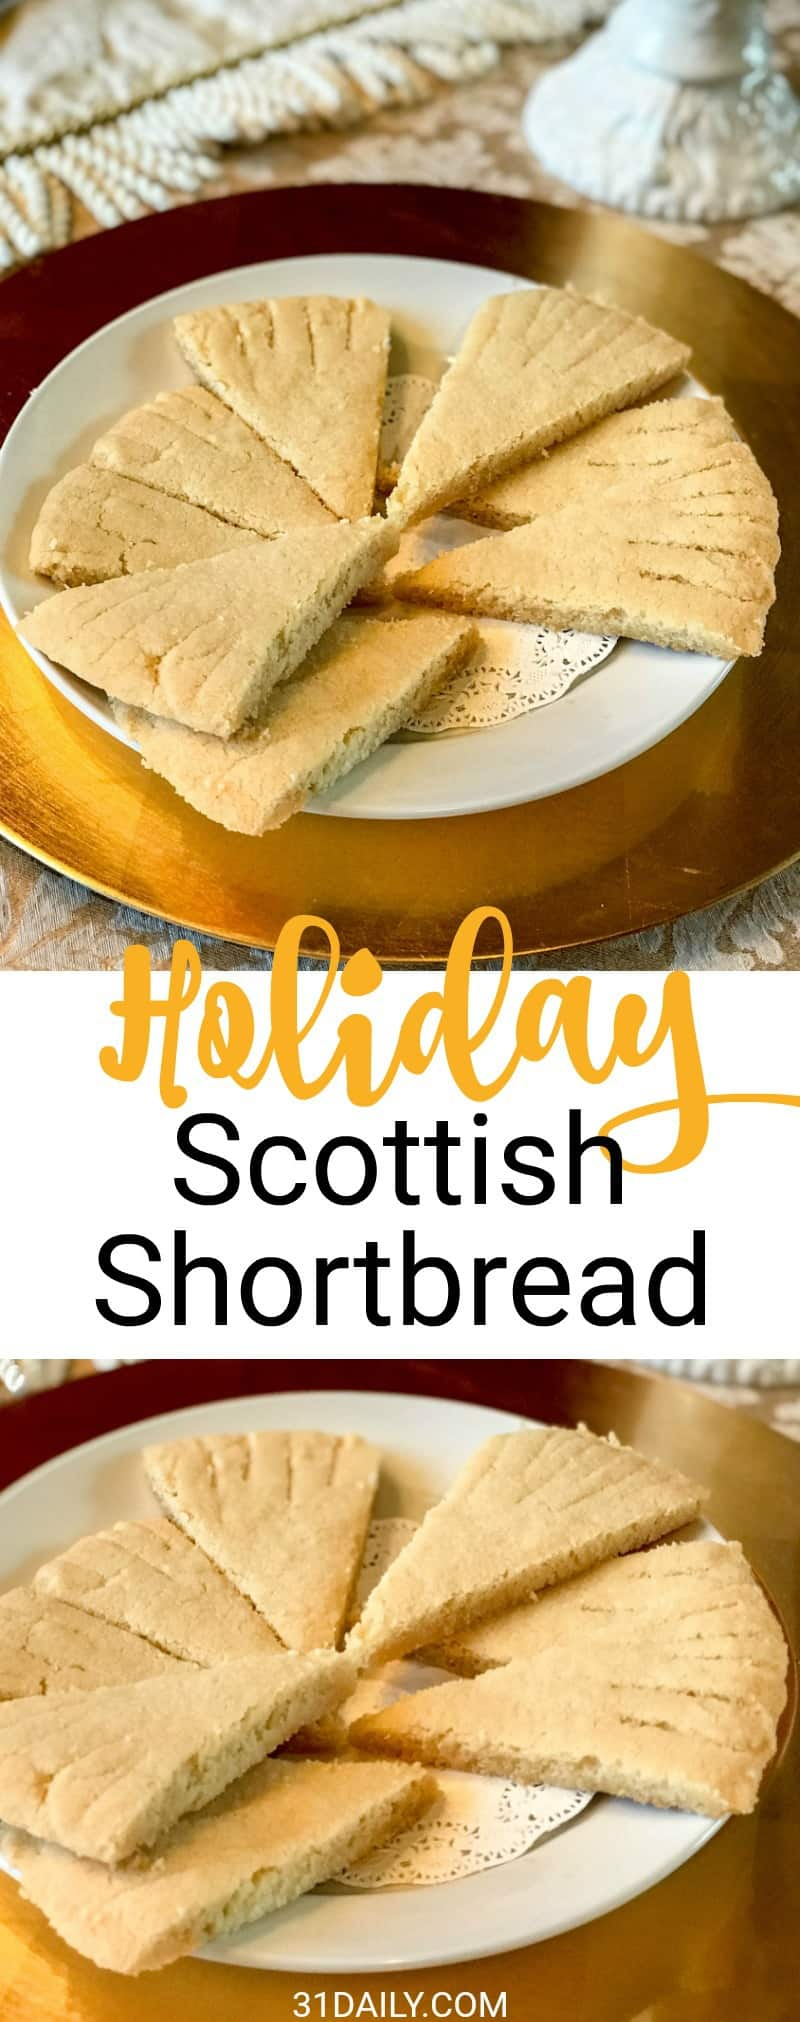 A Classic Scottish Shortbread for your Holiday Cookie Tray | 31Daily.com